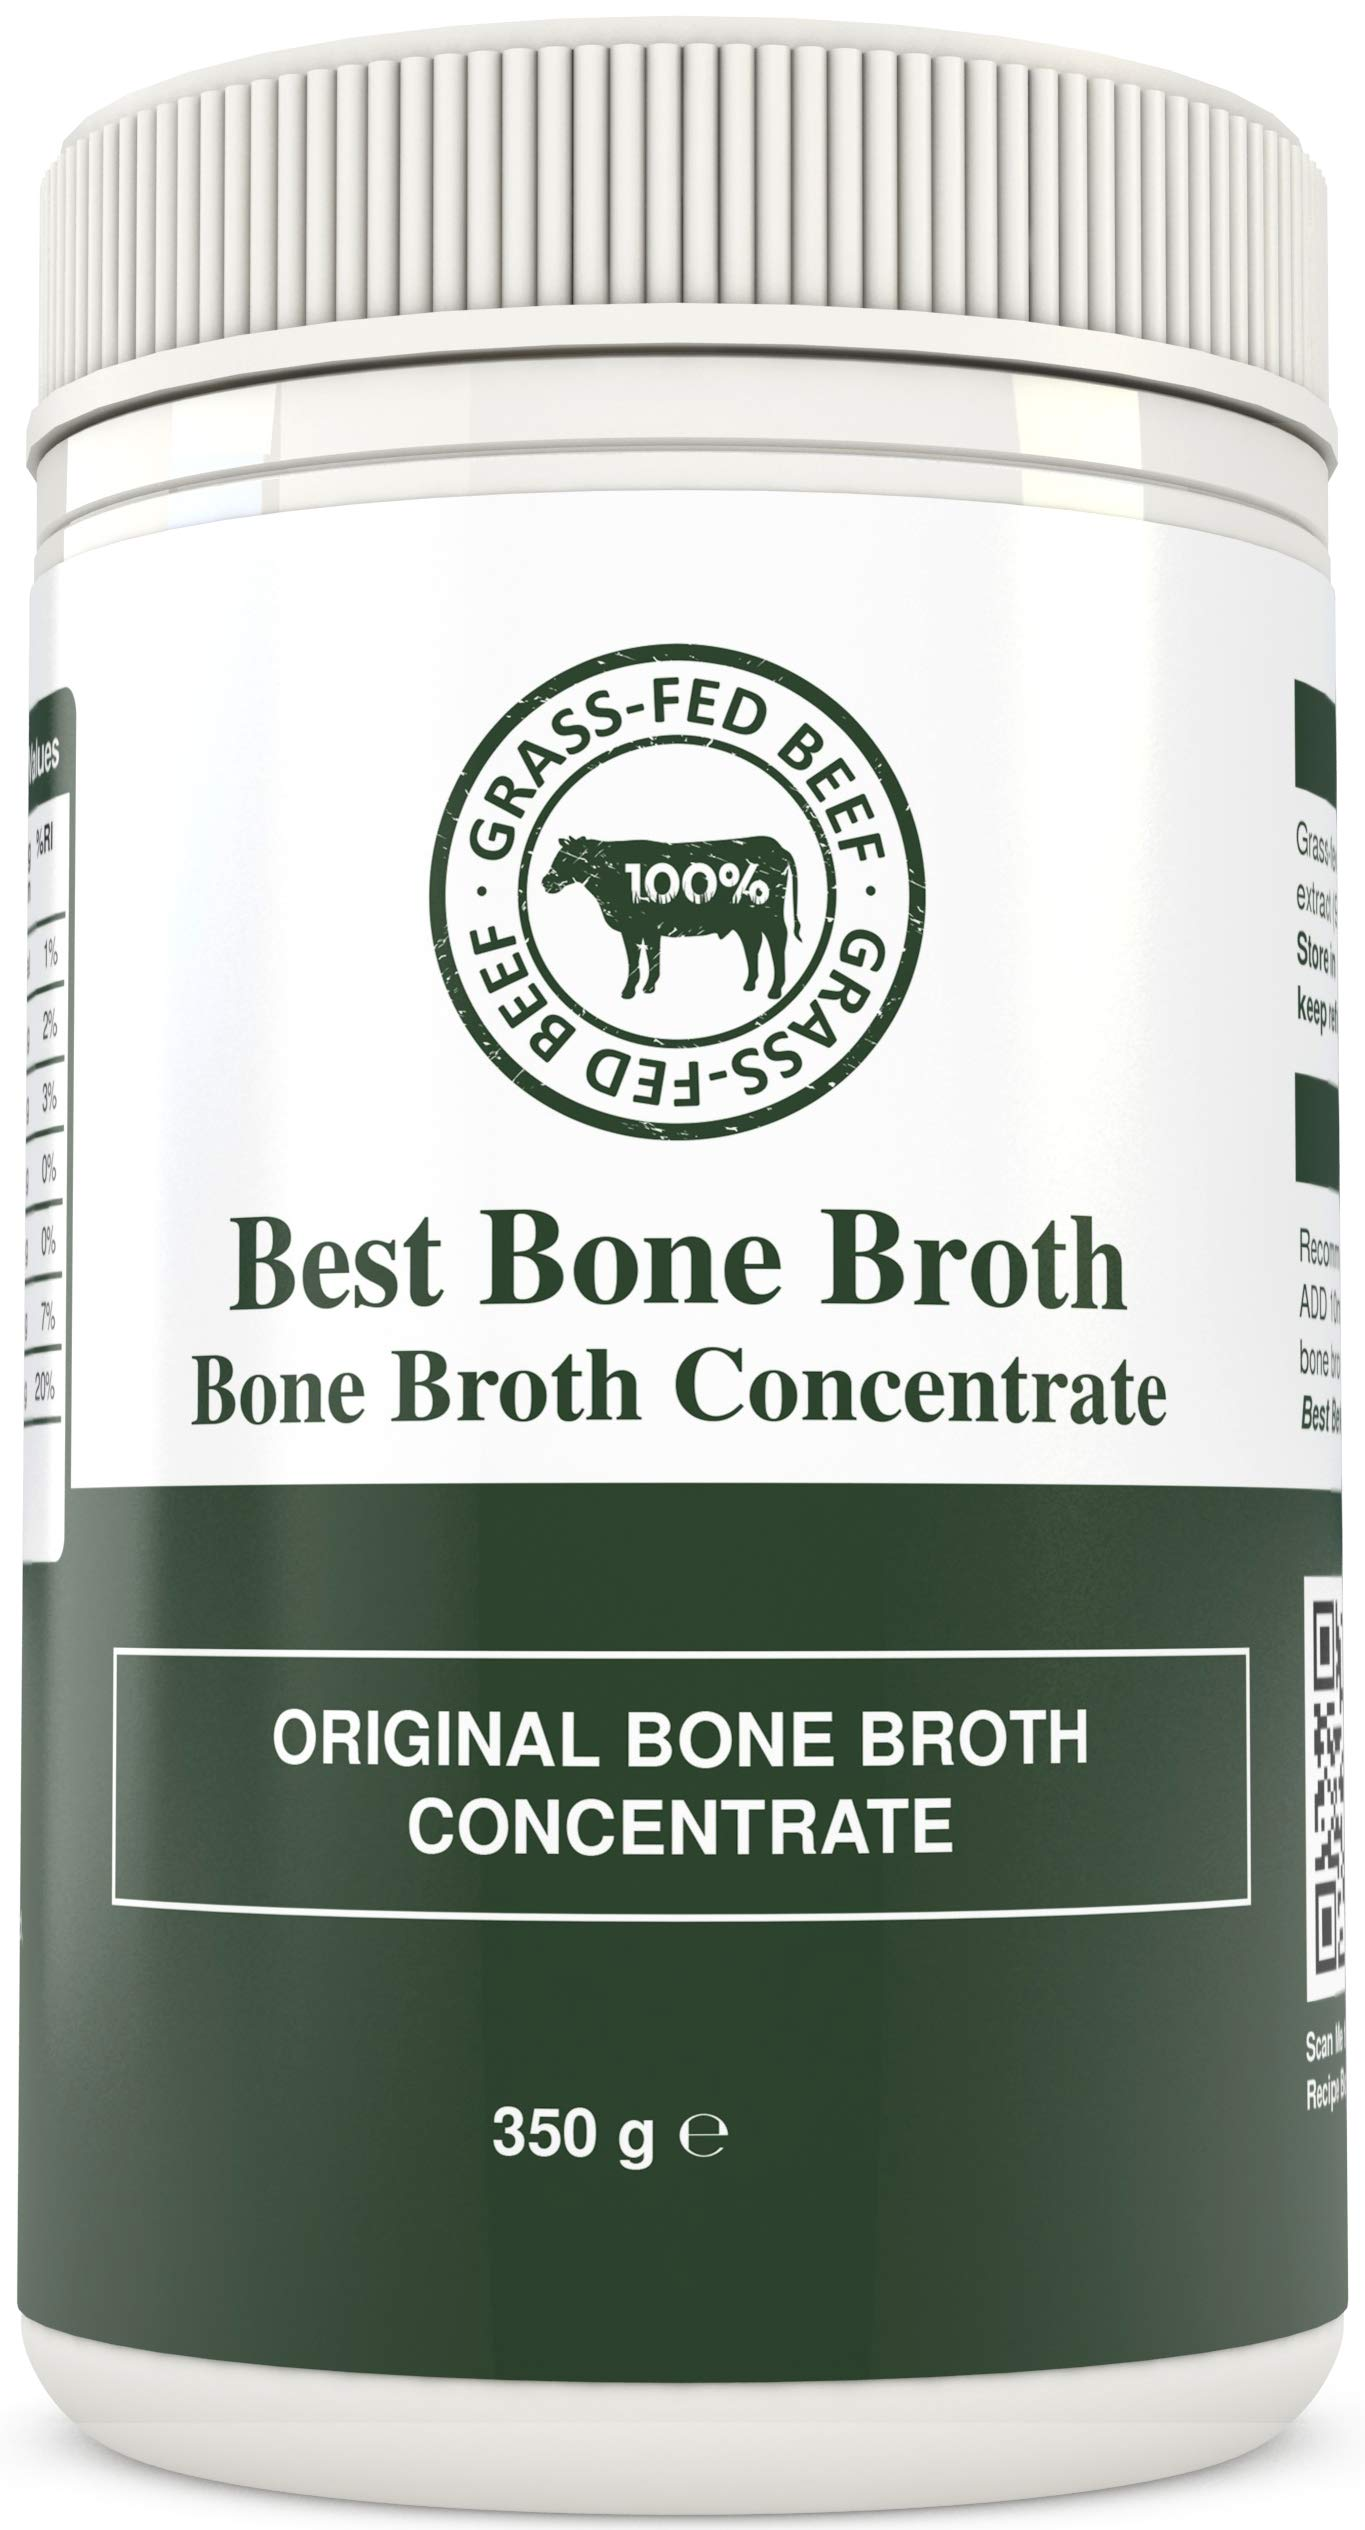 Bone Broth Premium Beef Bone Broth Concentrate - 100% Sourced from AU Grass-Fed, Pasture-Raised Cattle - Bone Broth Collagen